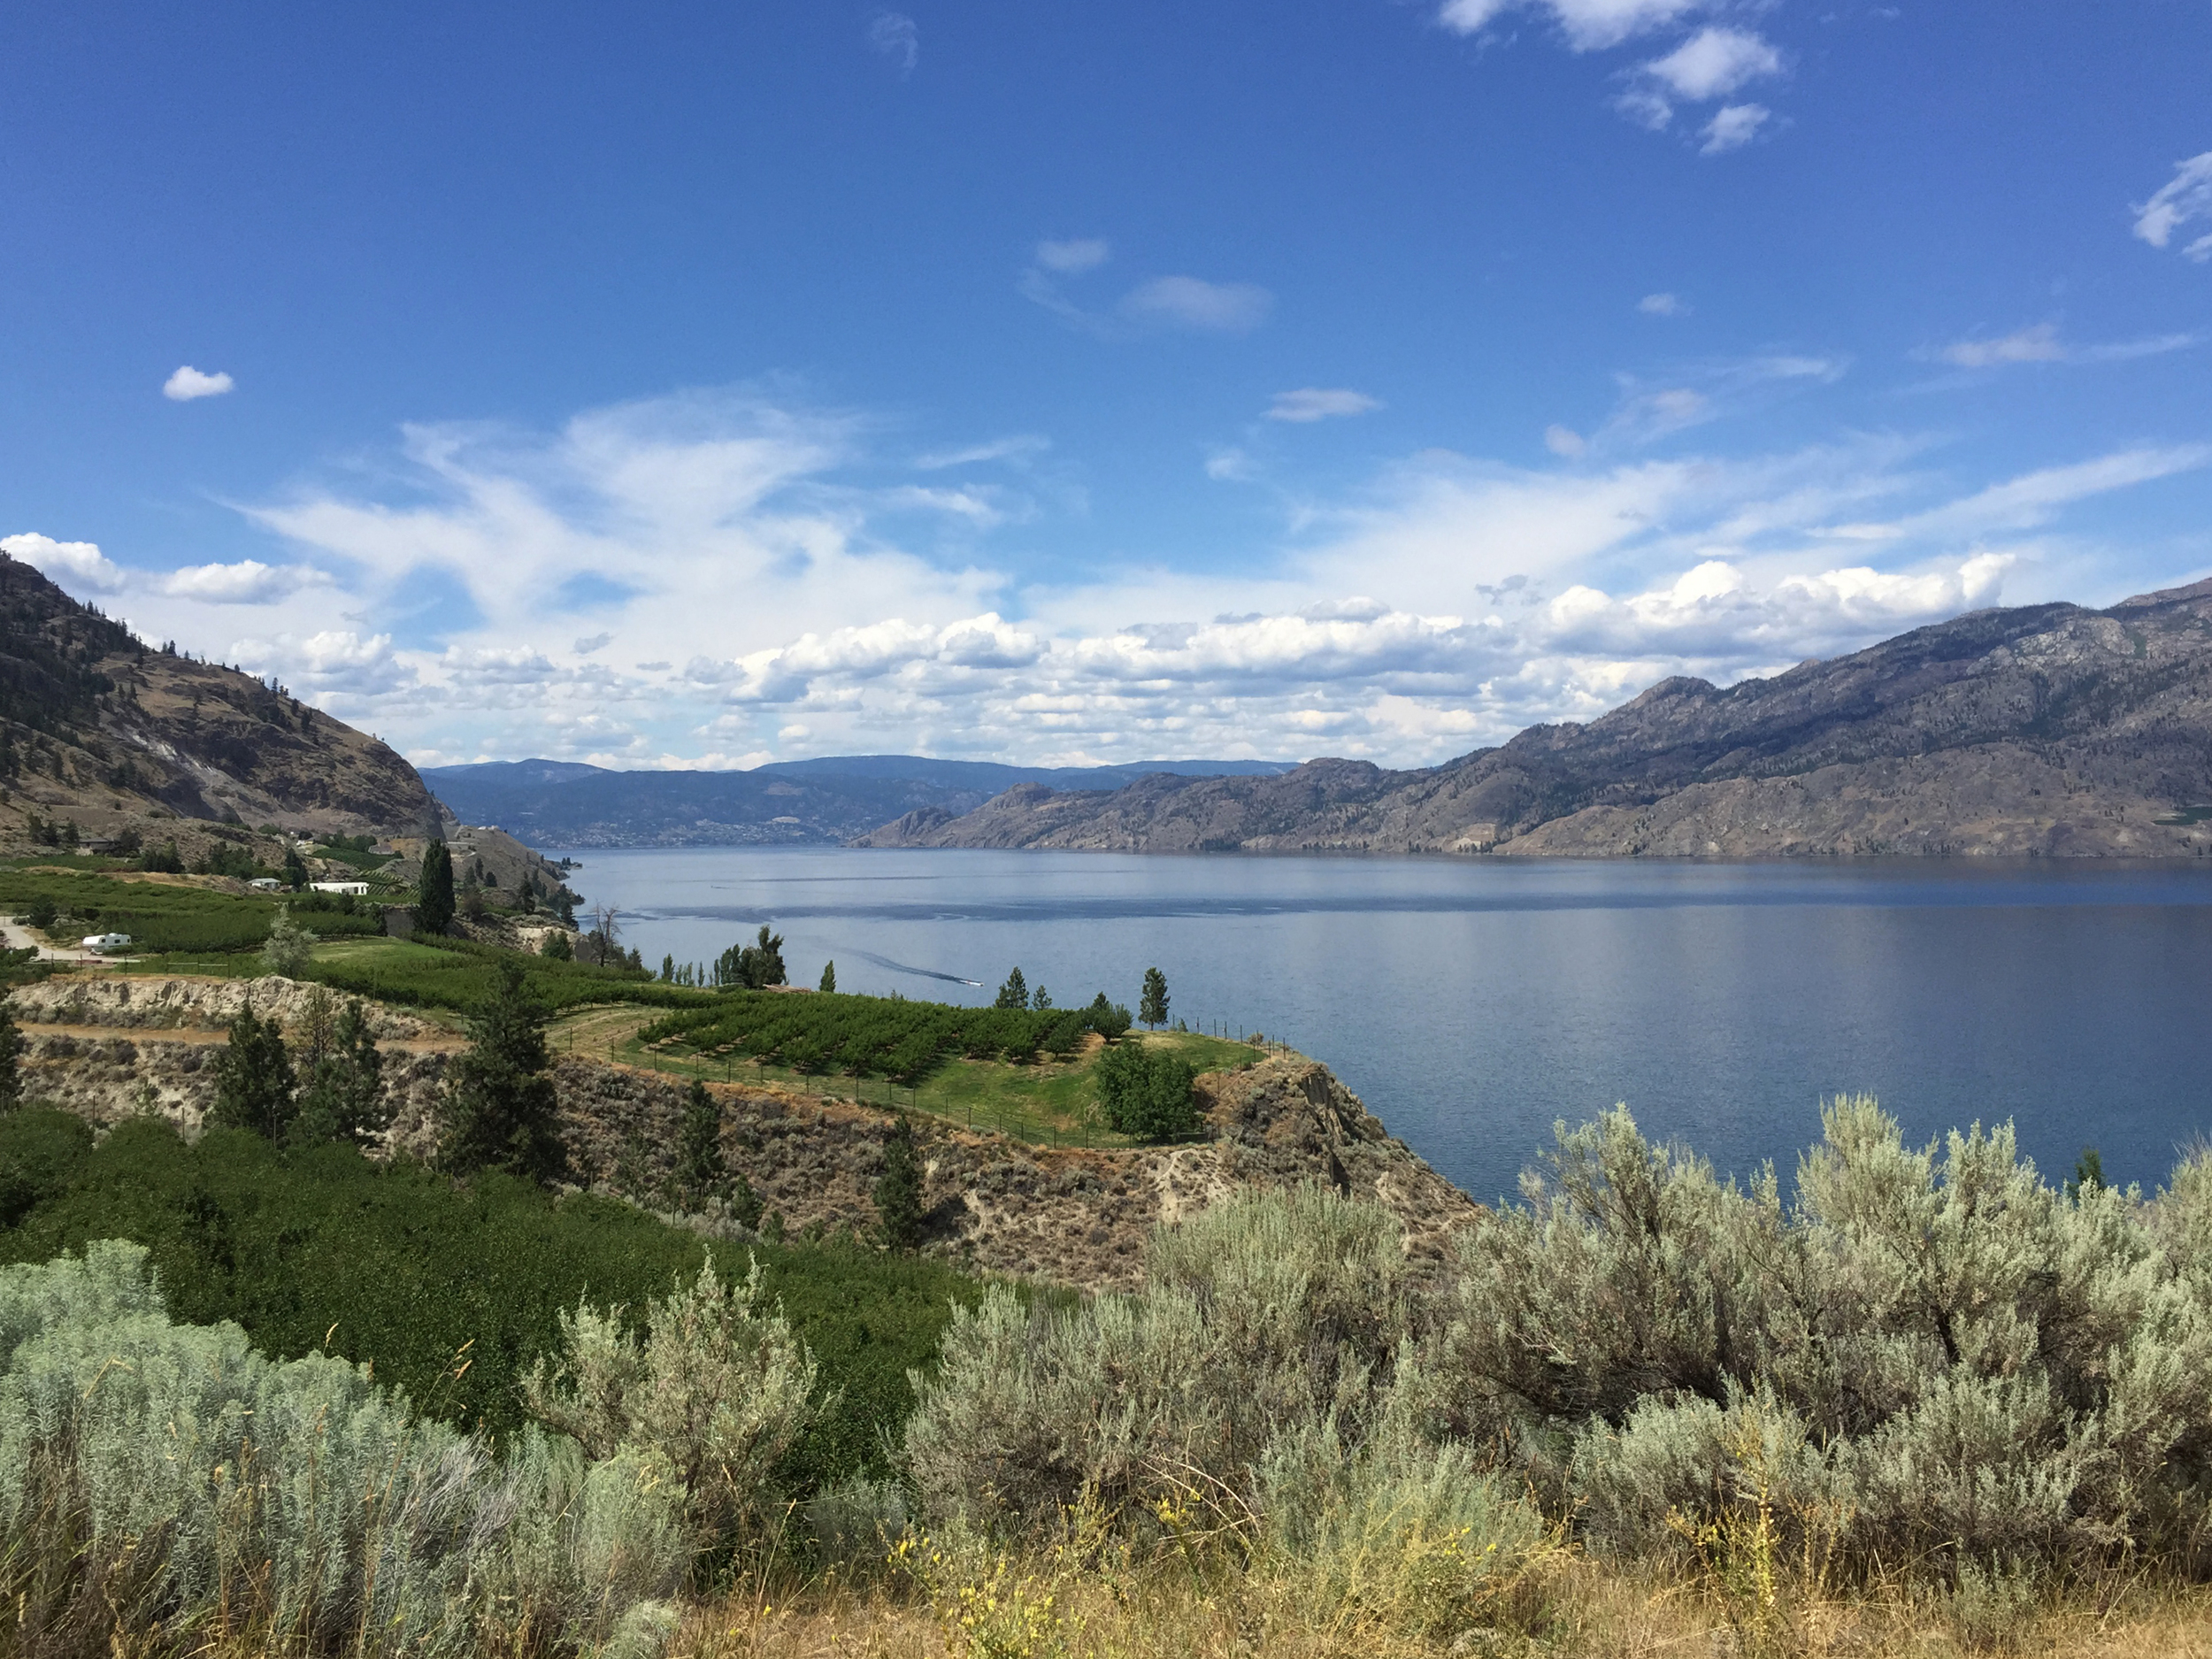 Summerland, BC - lovely town